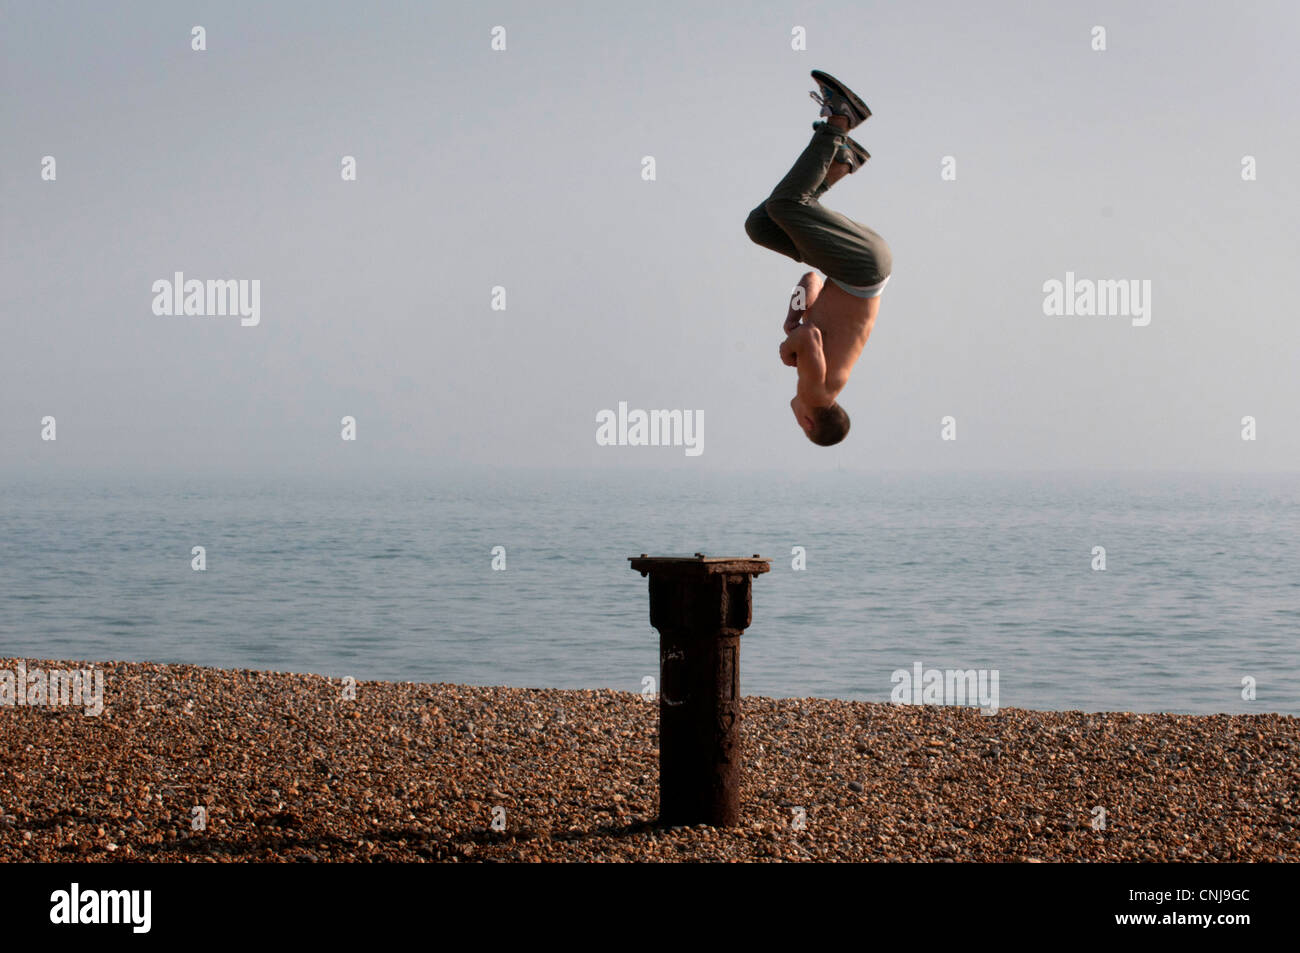 An acrobat somersaults on Brighton beach in England - Stock Image